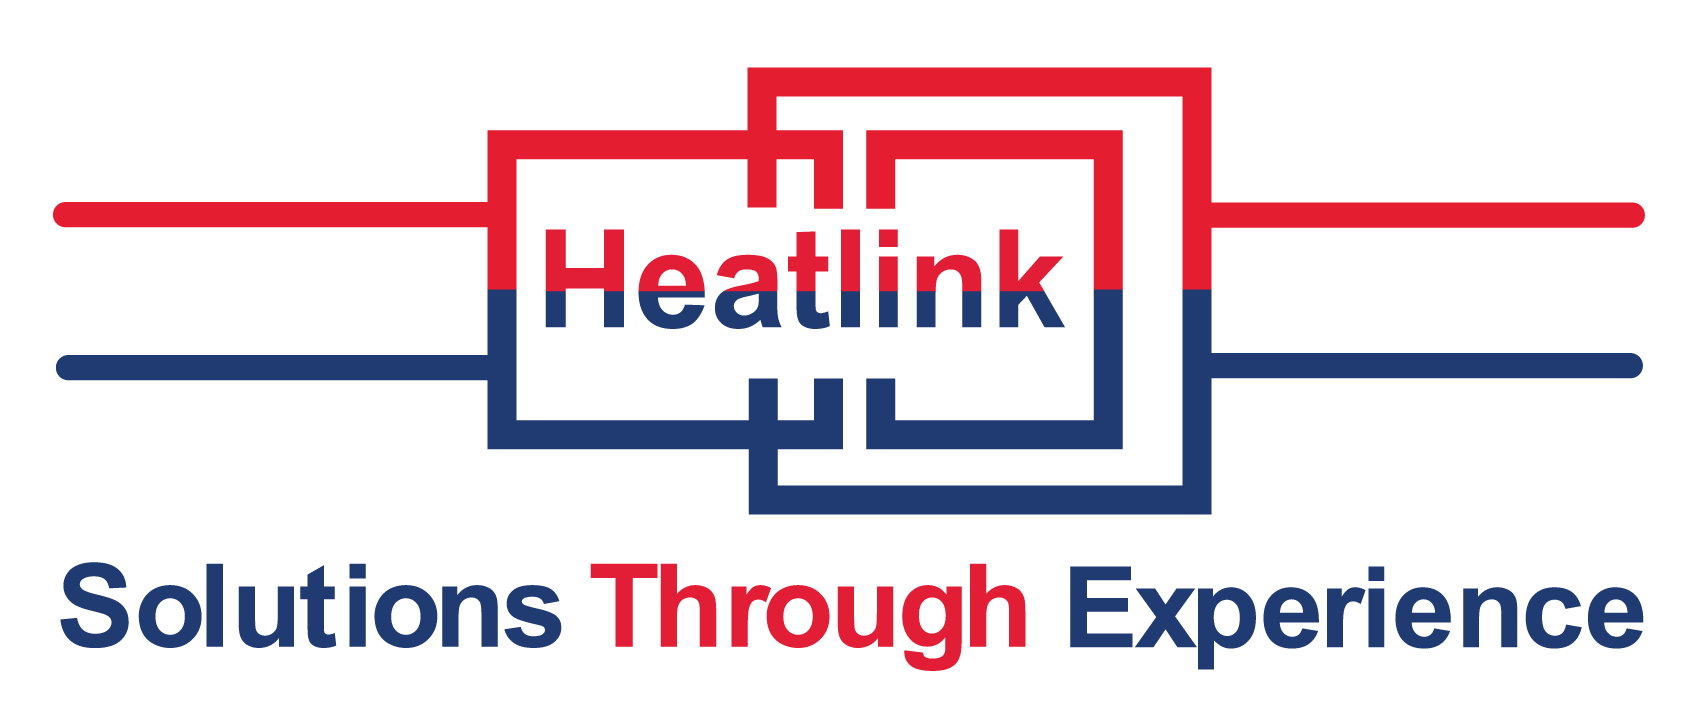 HEATLINK LOGO - Home